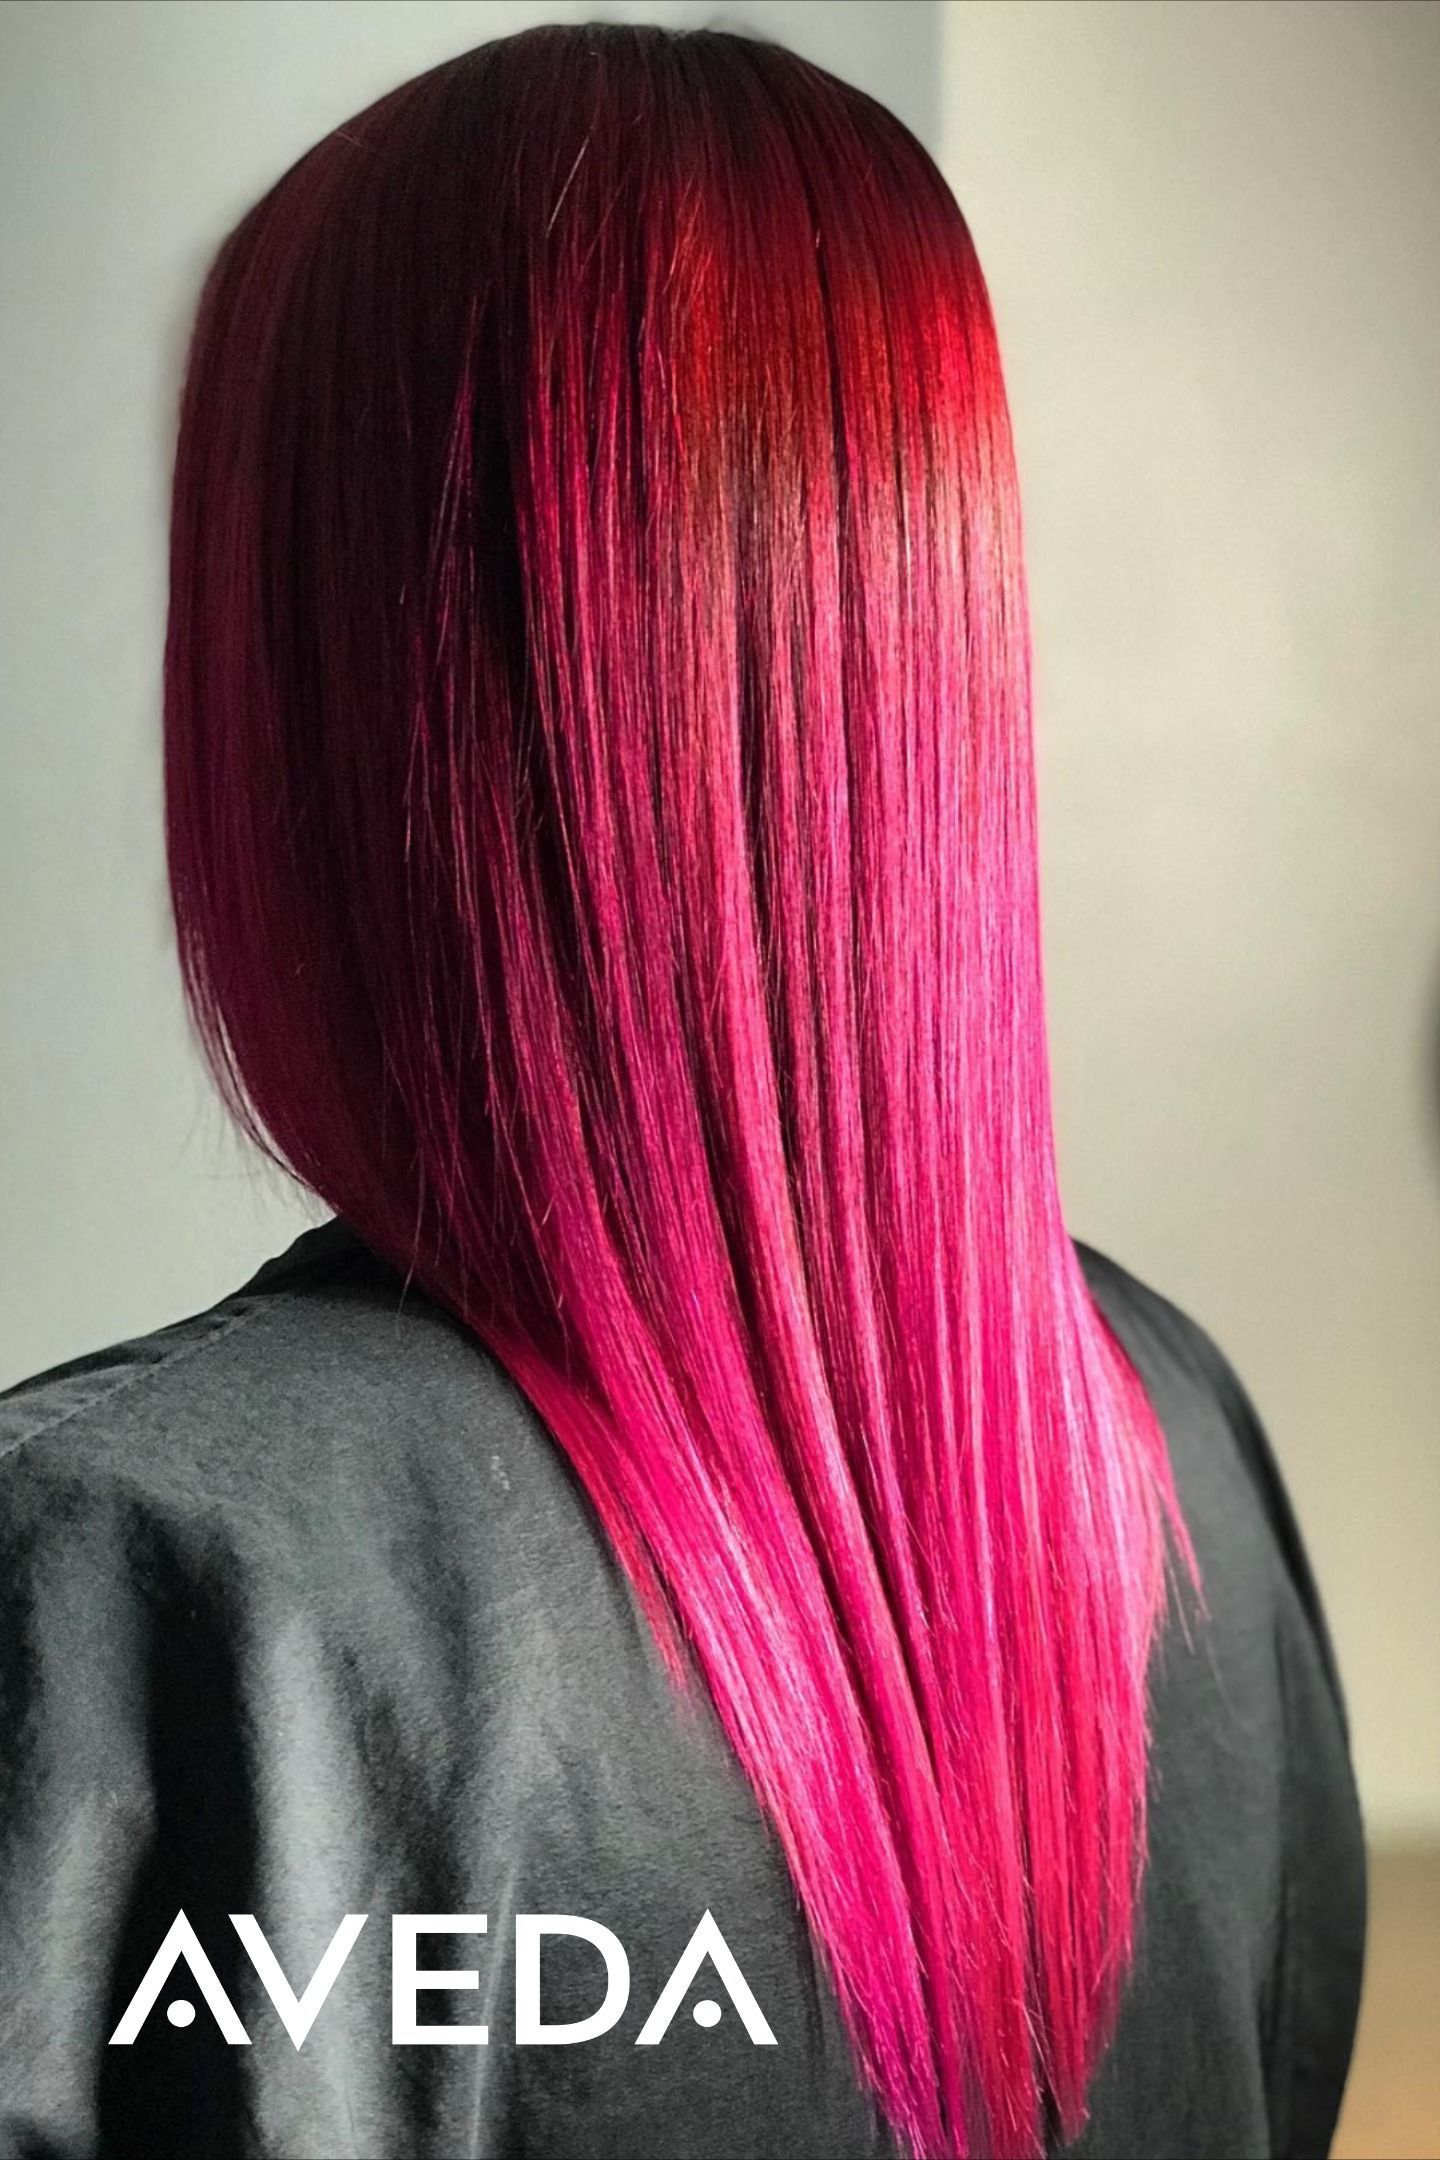 Dark pink hair color #avedasalon Did you know you can get a hot pink fashion hair color this